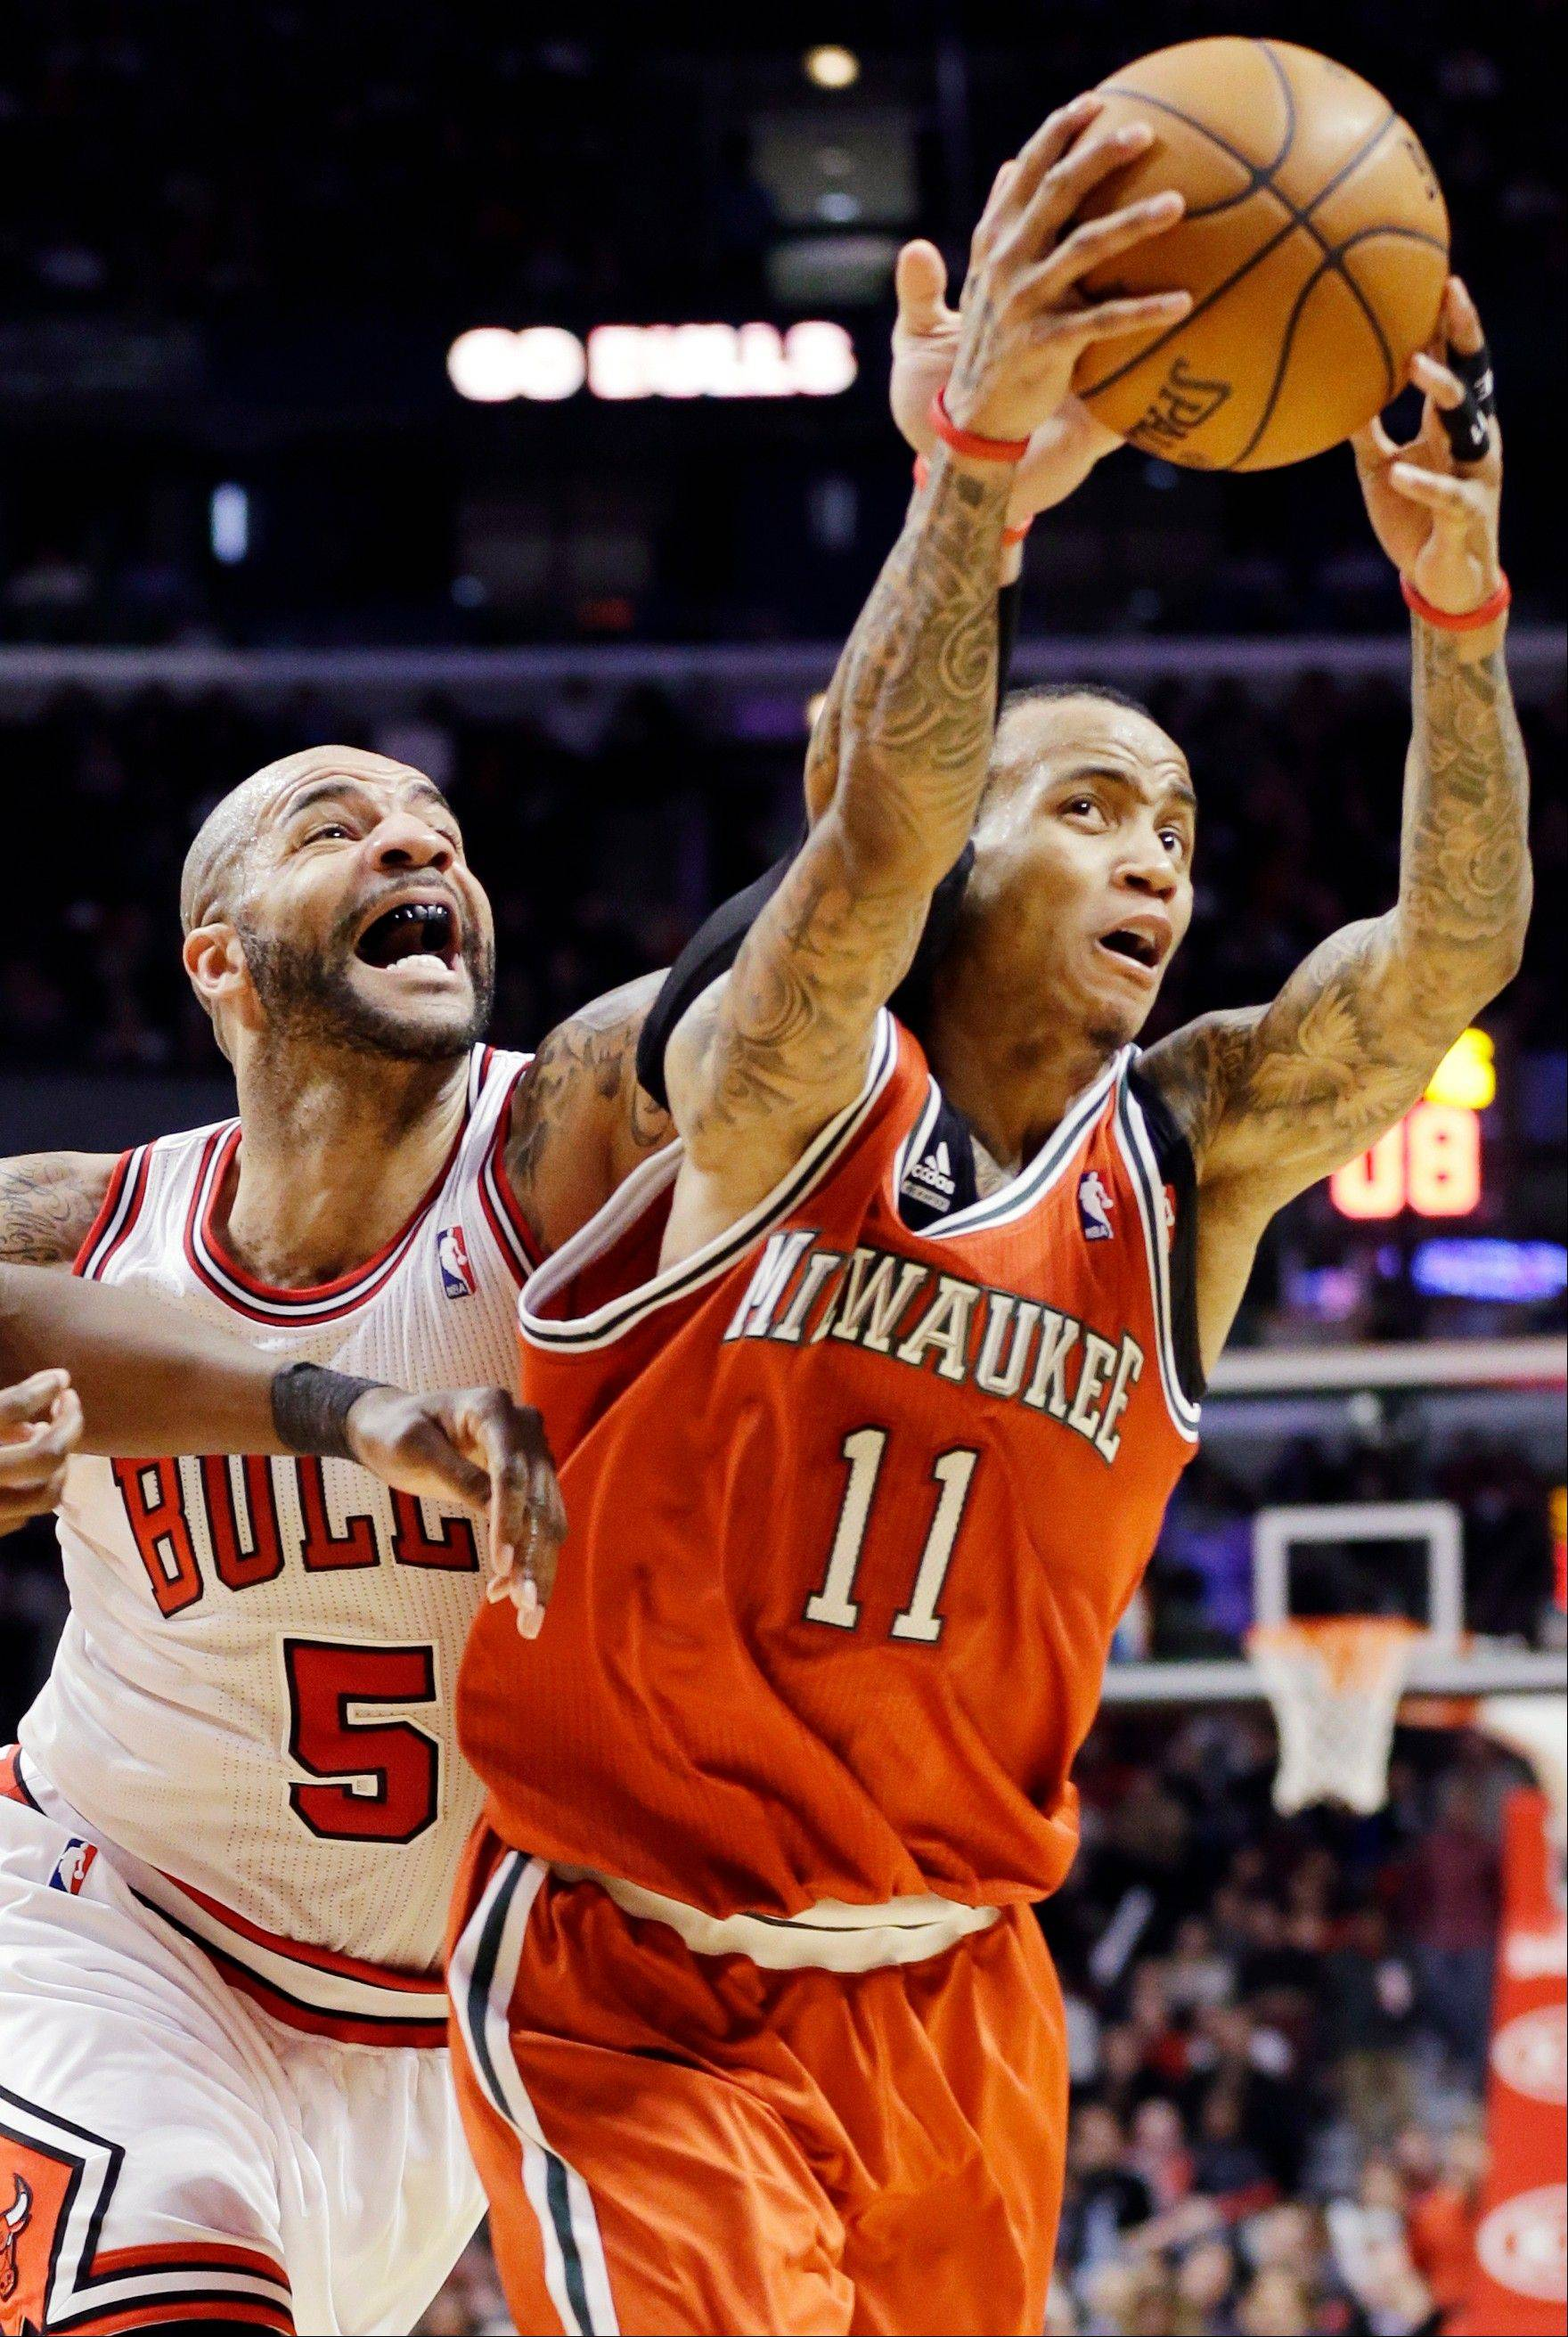 Jennings, Bucks 'trash' Bulls